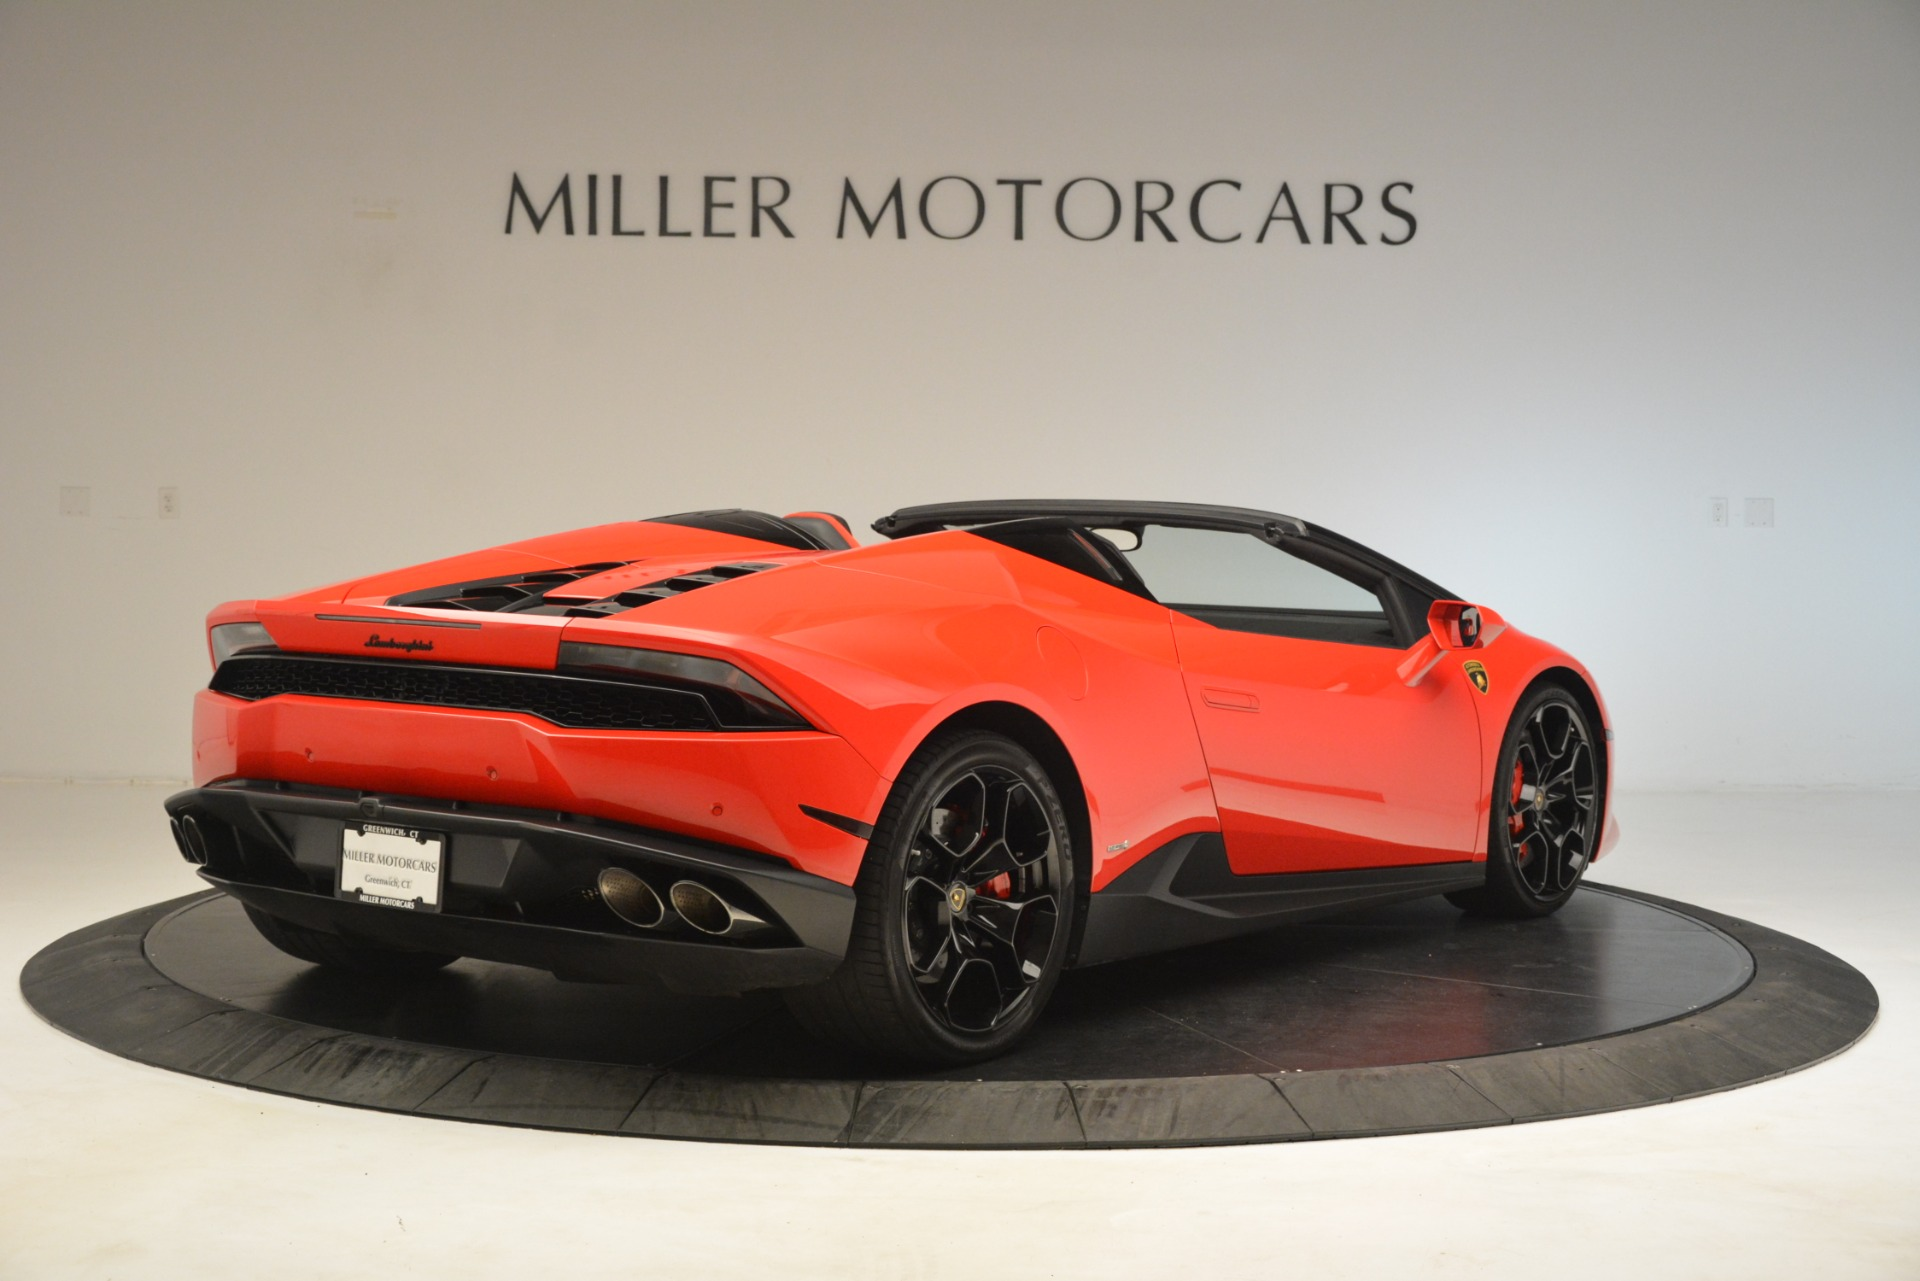 Used 2017 Lamborghini Huracan LP 610-4 Spyder For Sale In Greenwich, CT 3270_p5